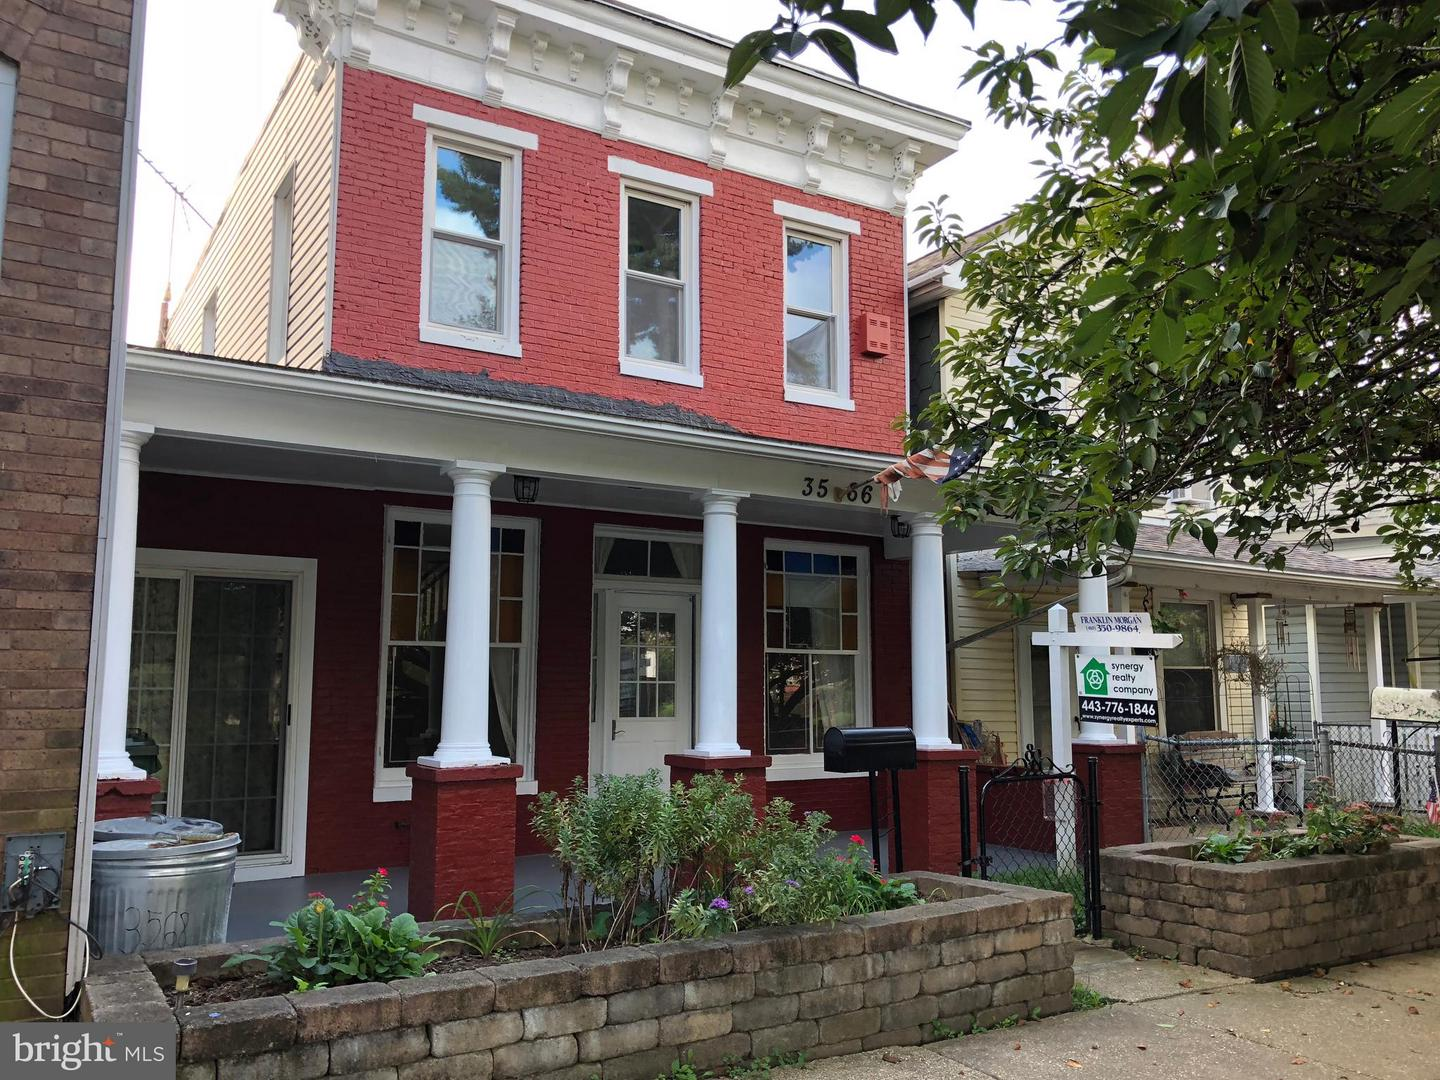 3566 Poole St, Baltimore, MD 21211, MLS #1009600720 - Howard Hanna